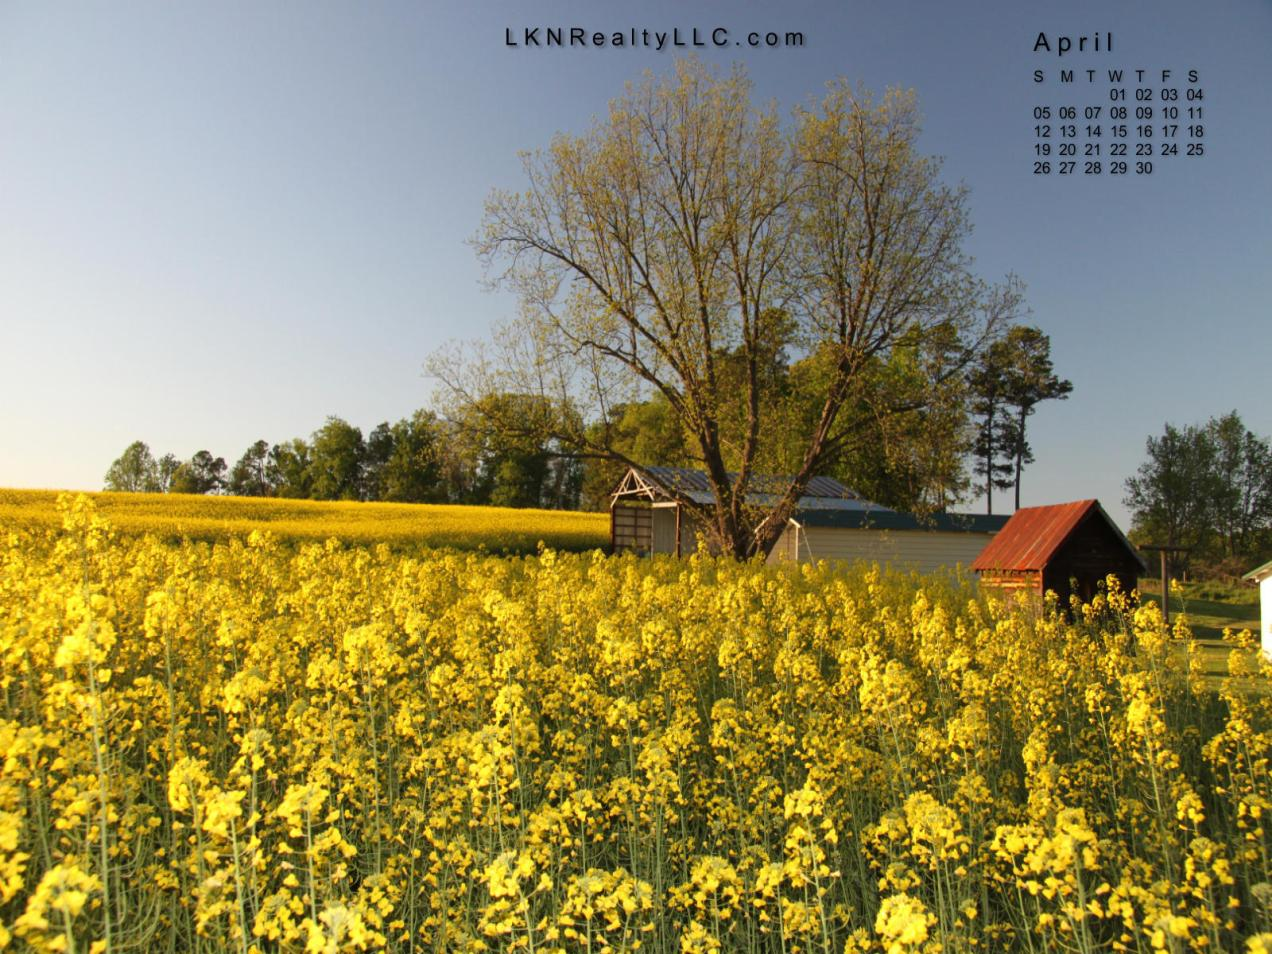 Lake Norman Real Estate's April 2015 Desktop Calendar